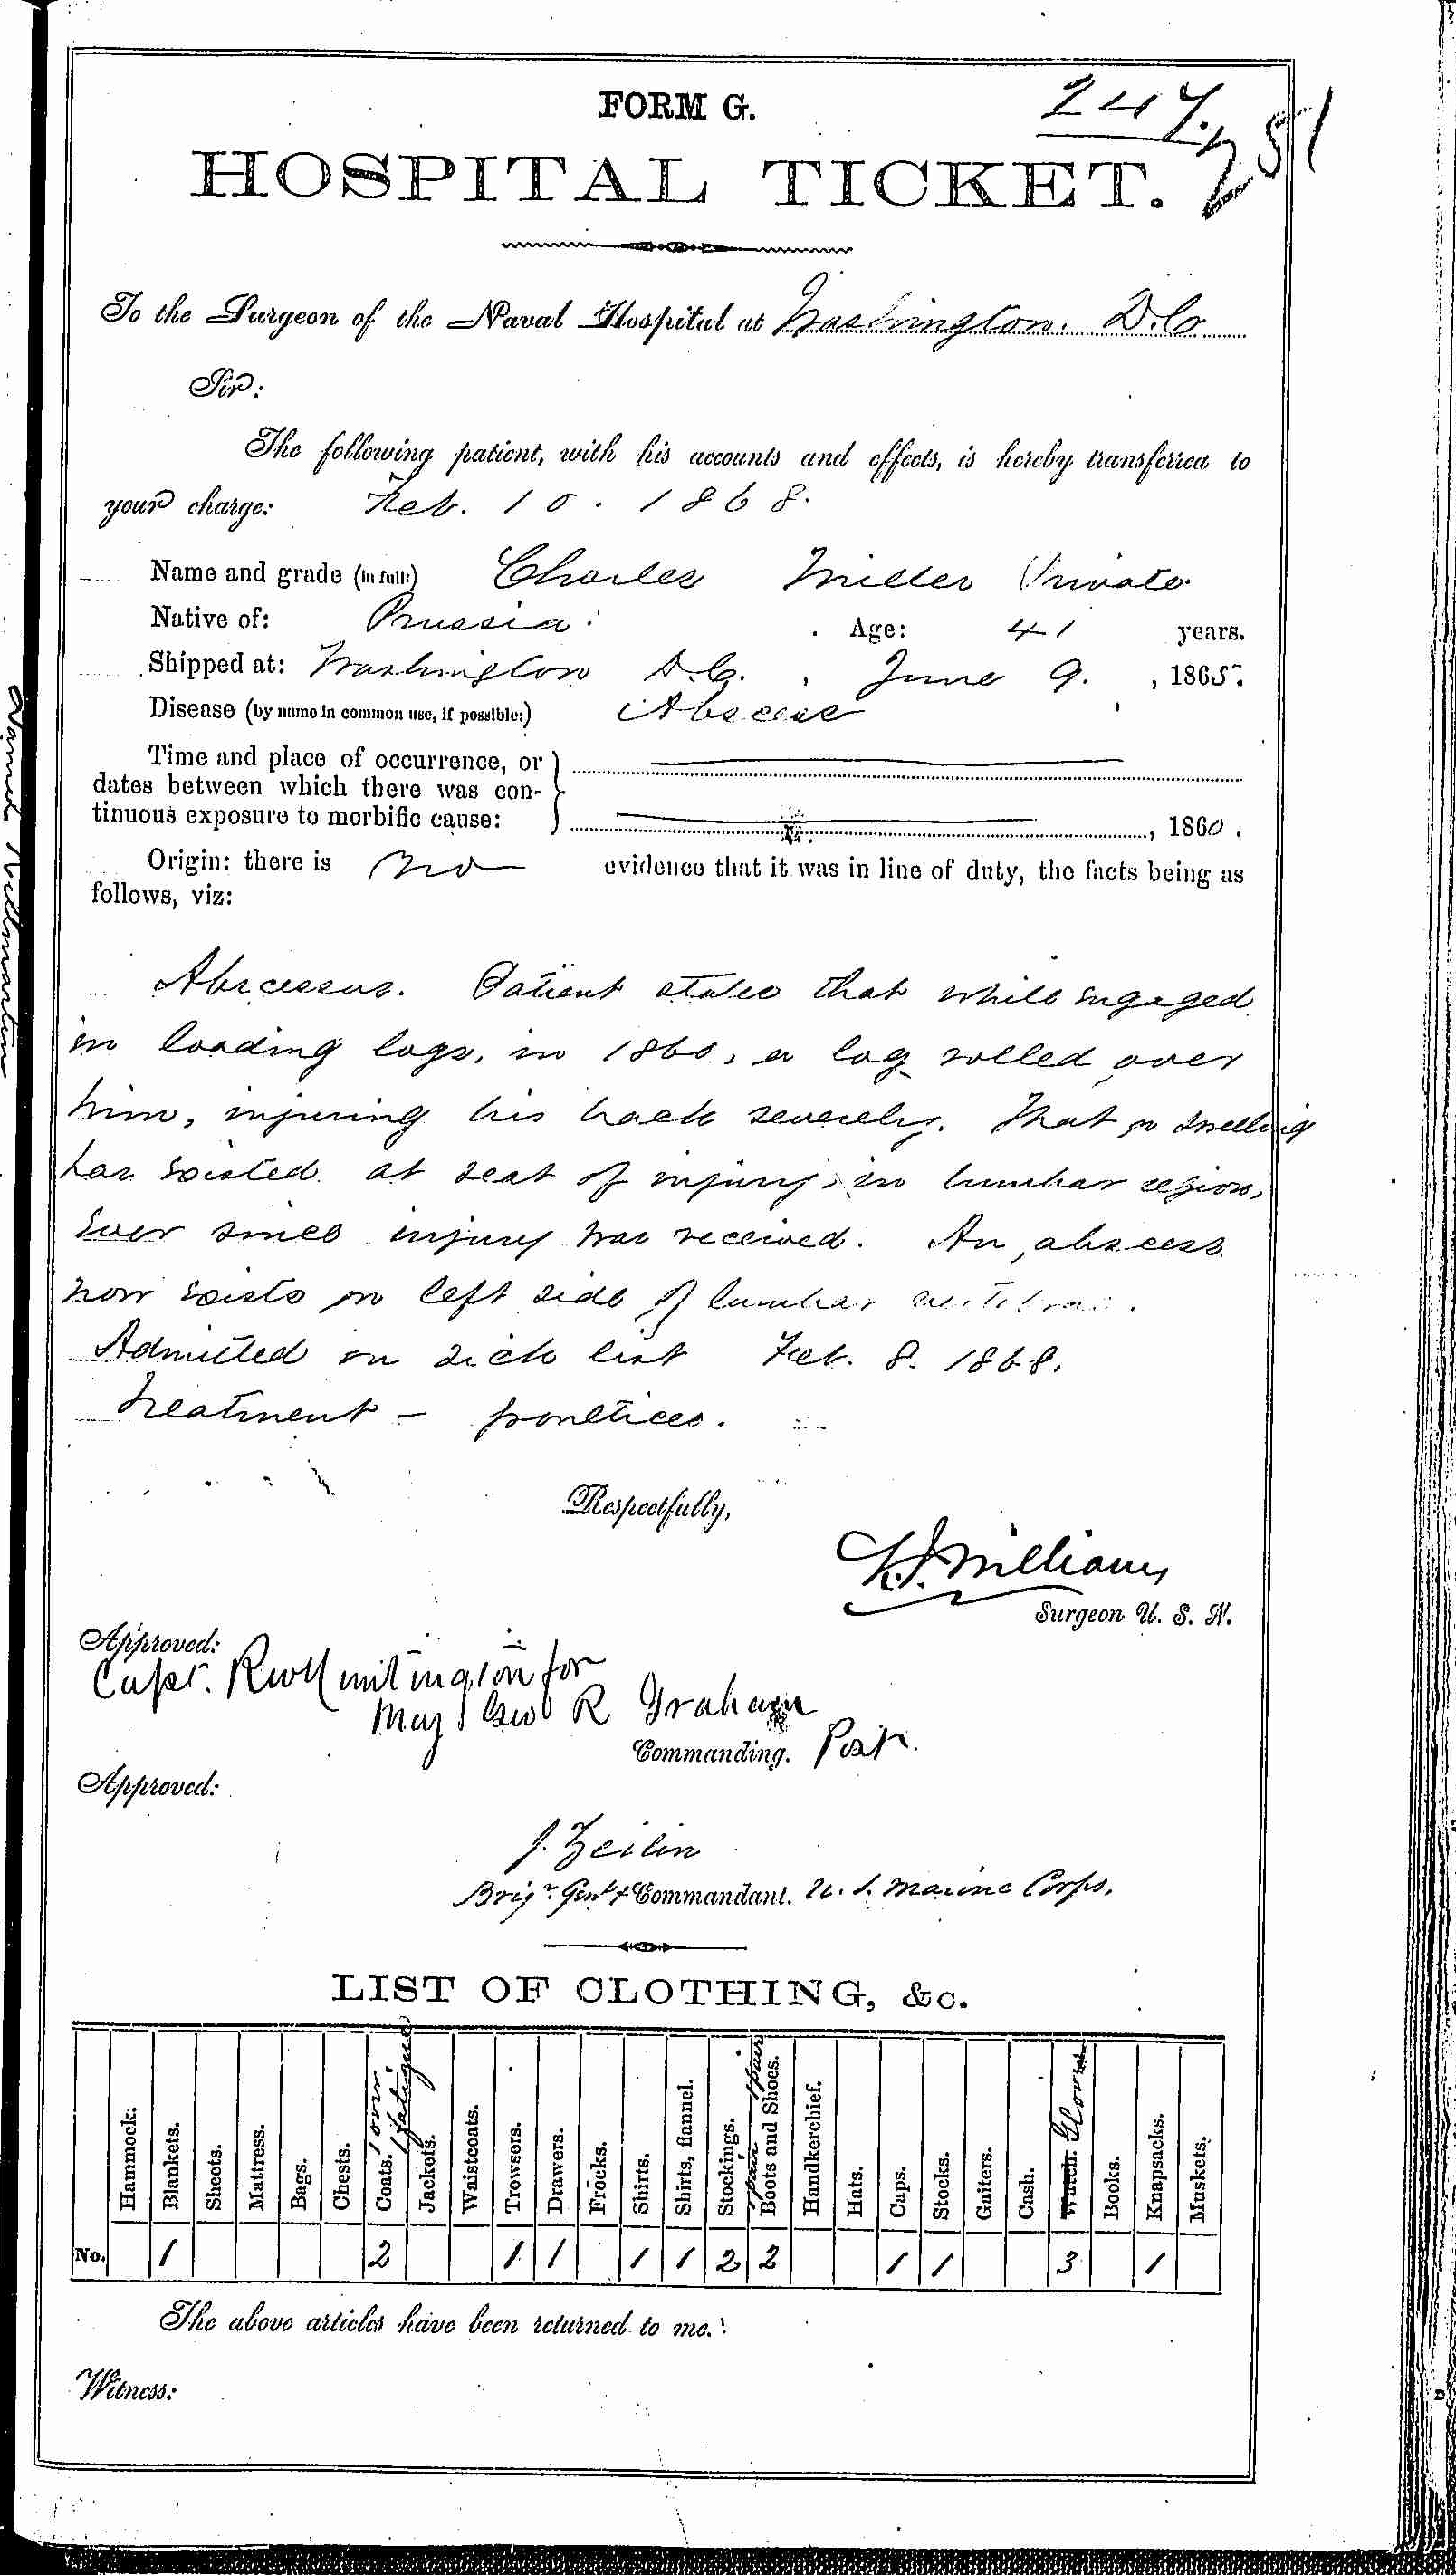 Entry for Charles Miller (page 1 of 2) in the log Hospital Tickets and Case Papers - Naval Hospital - Washington, D.C. - 1866-68